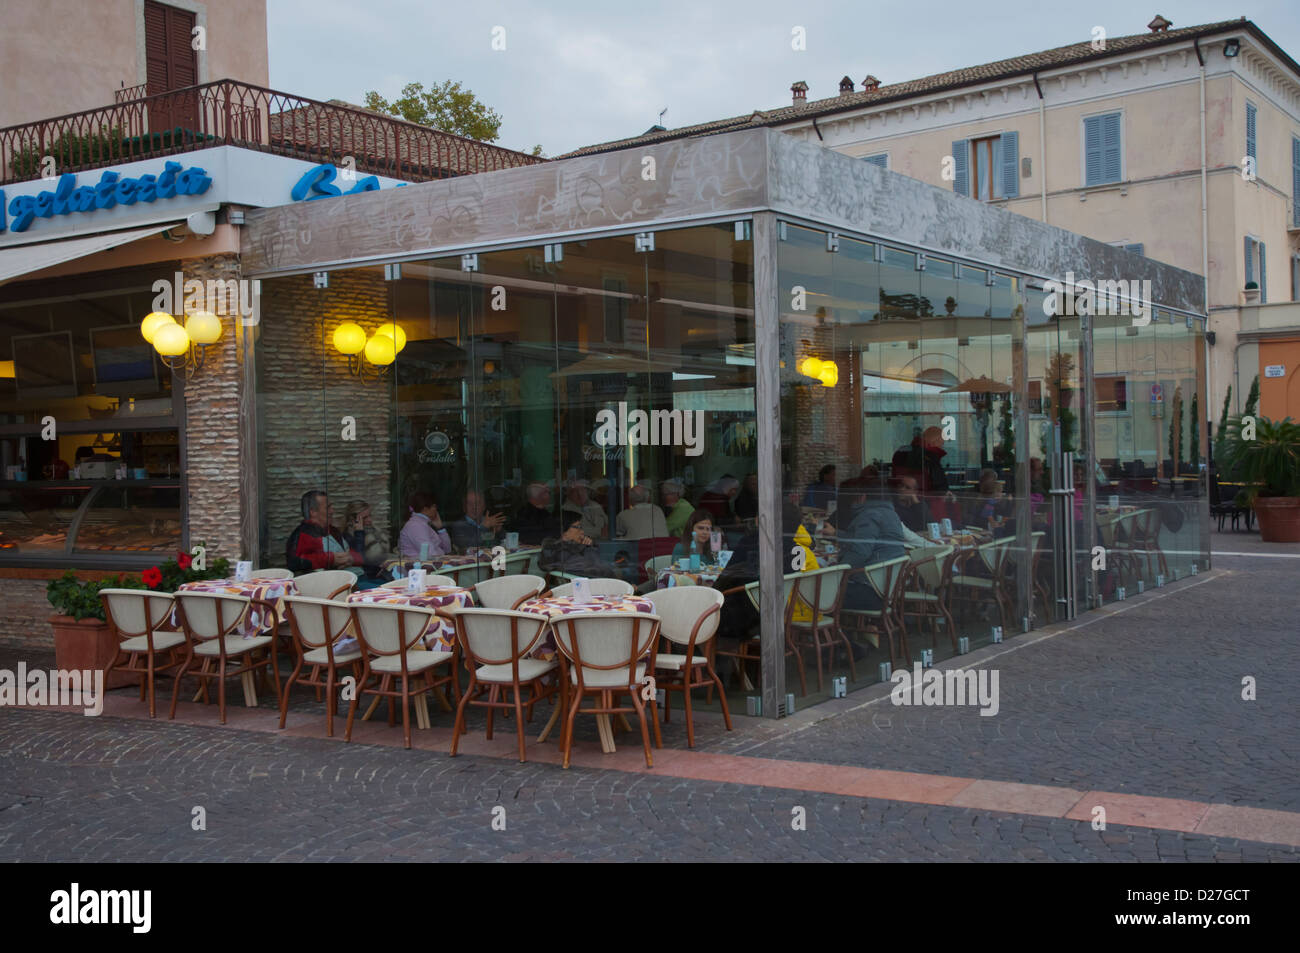 Cafe with glass walls and ceiling at waterfront Bardelino town Lago di Garda the Garda Lake the Veneto region Italy - Stock Image